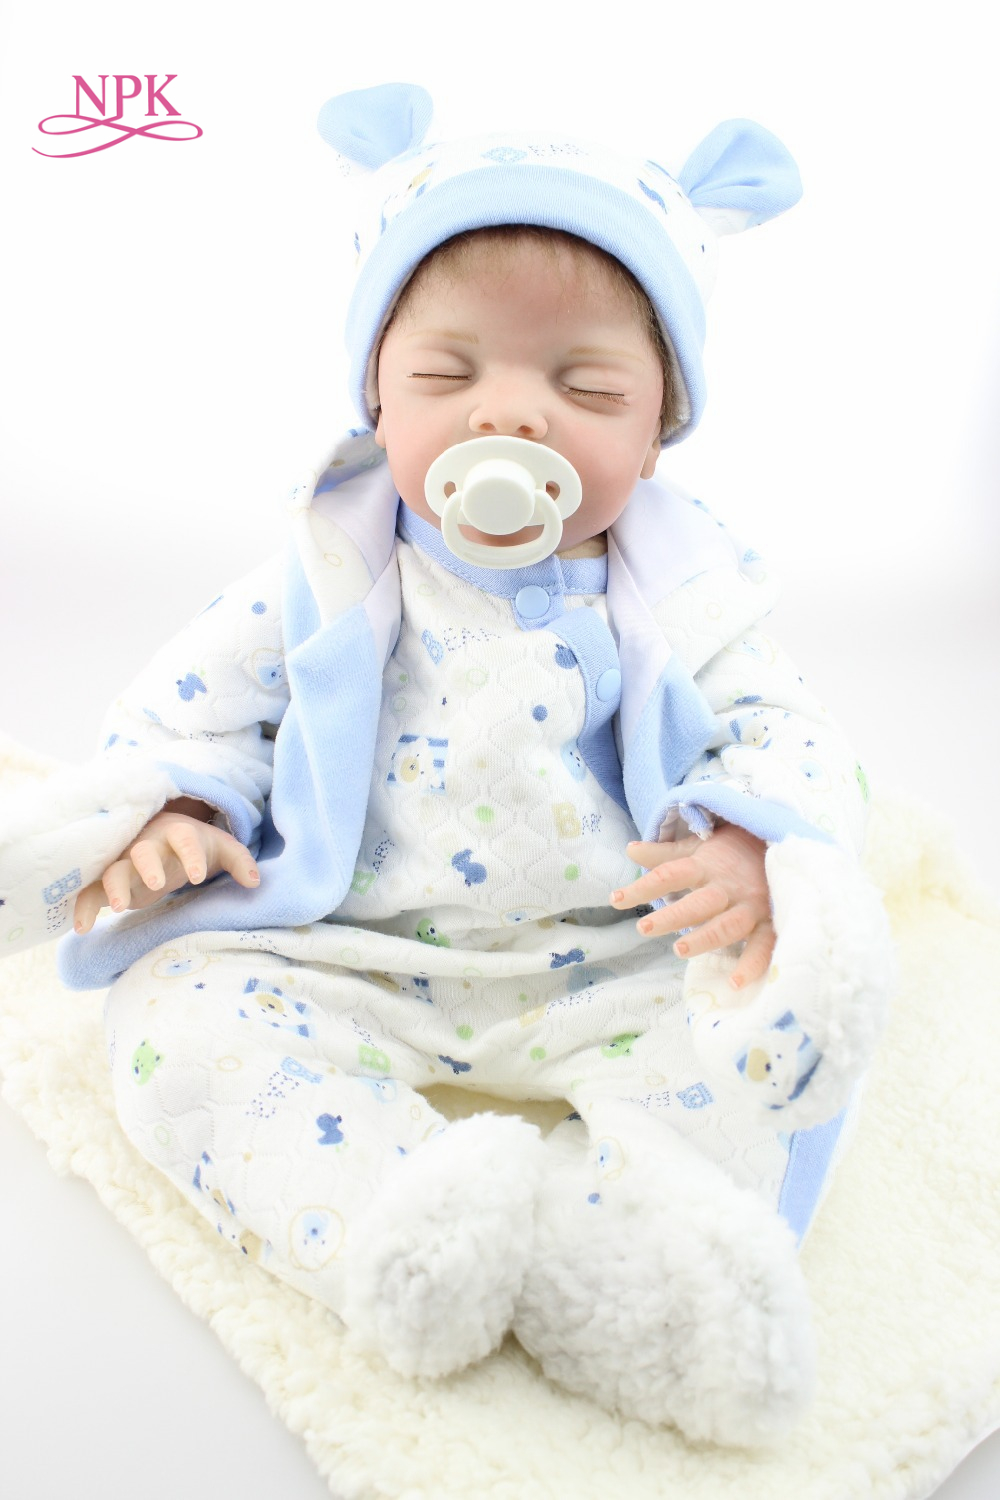 NPK reborn doll with soft real gentle touch hotsale lifelike reborn baby dolls fashion doll silicone vinyl for child